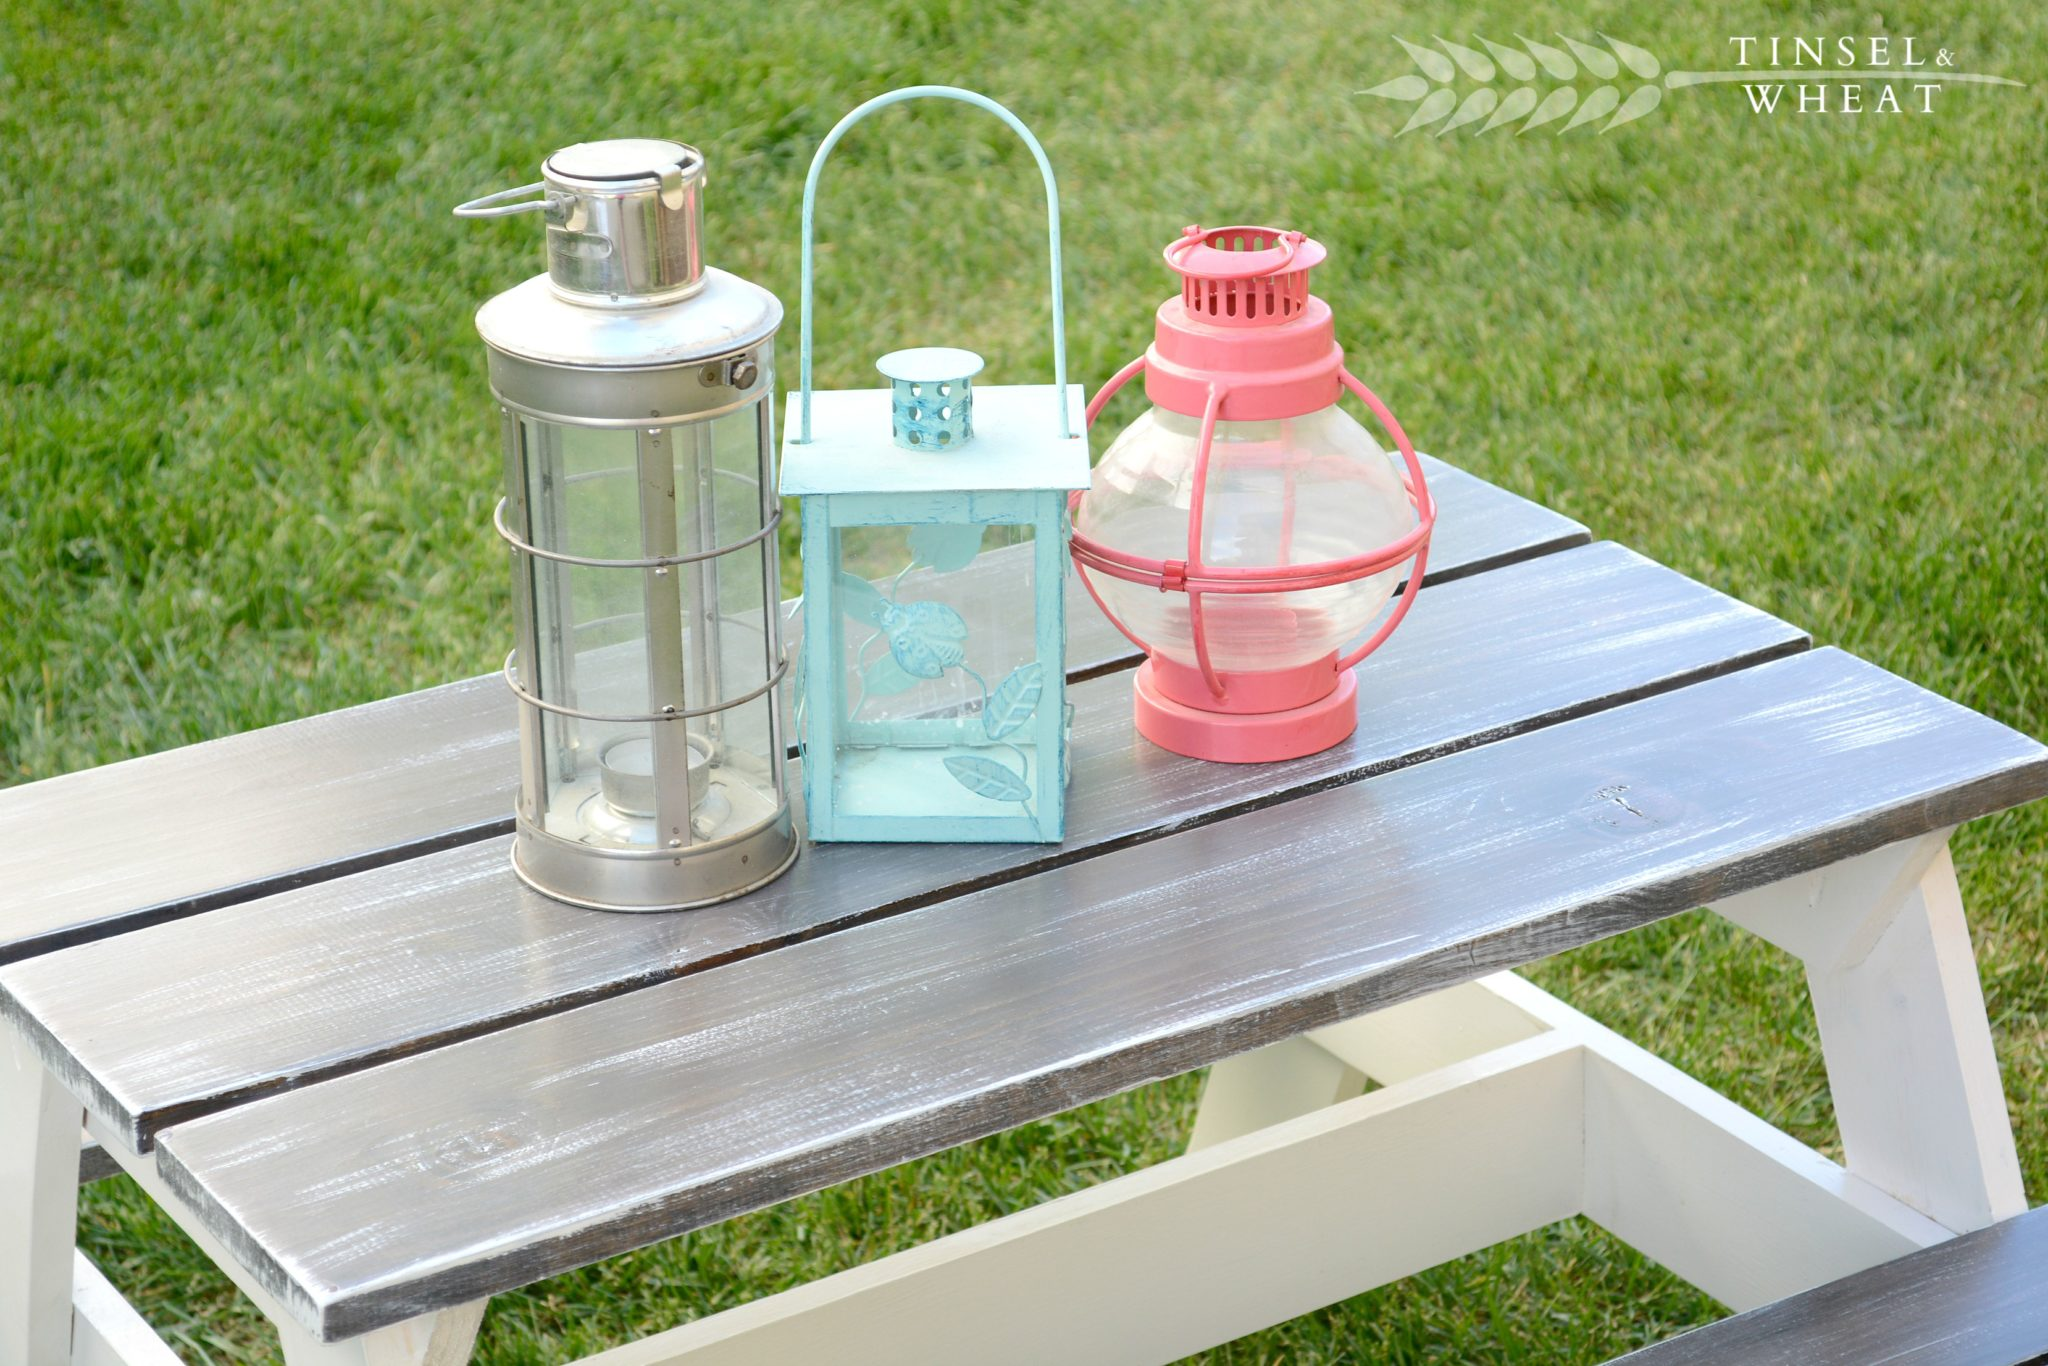 DIY Children's Picnic Table from Tinsel and Wheat